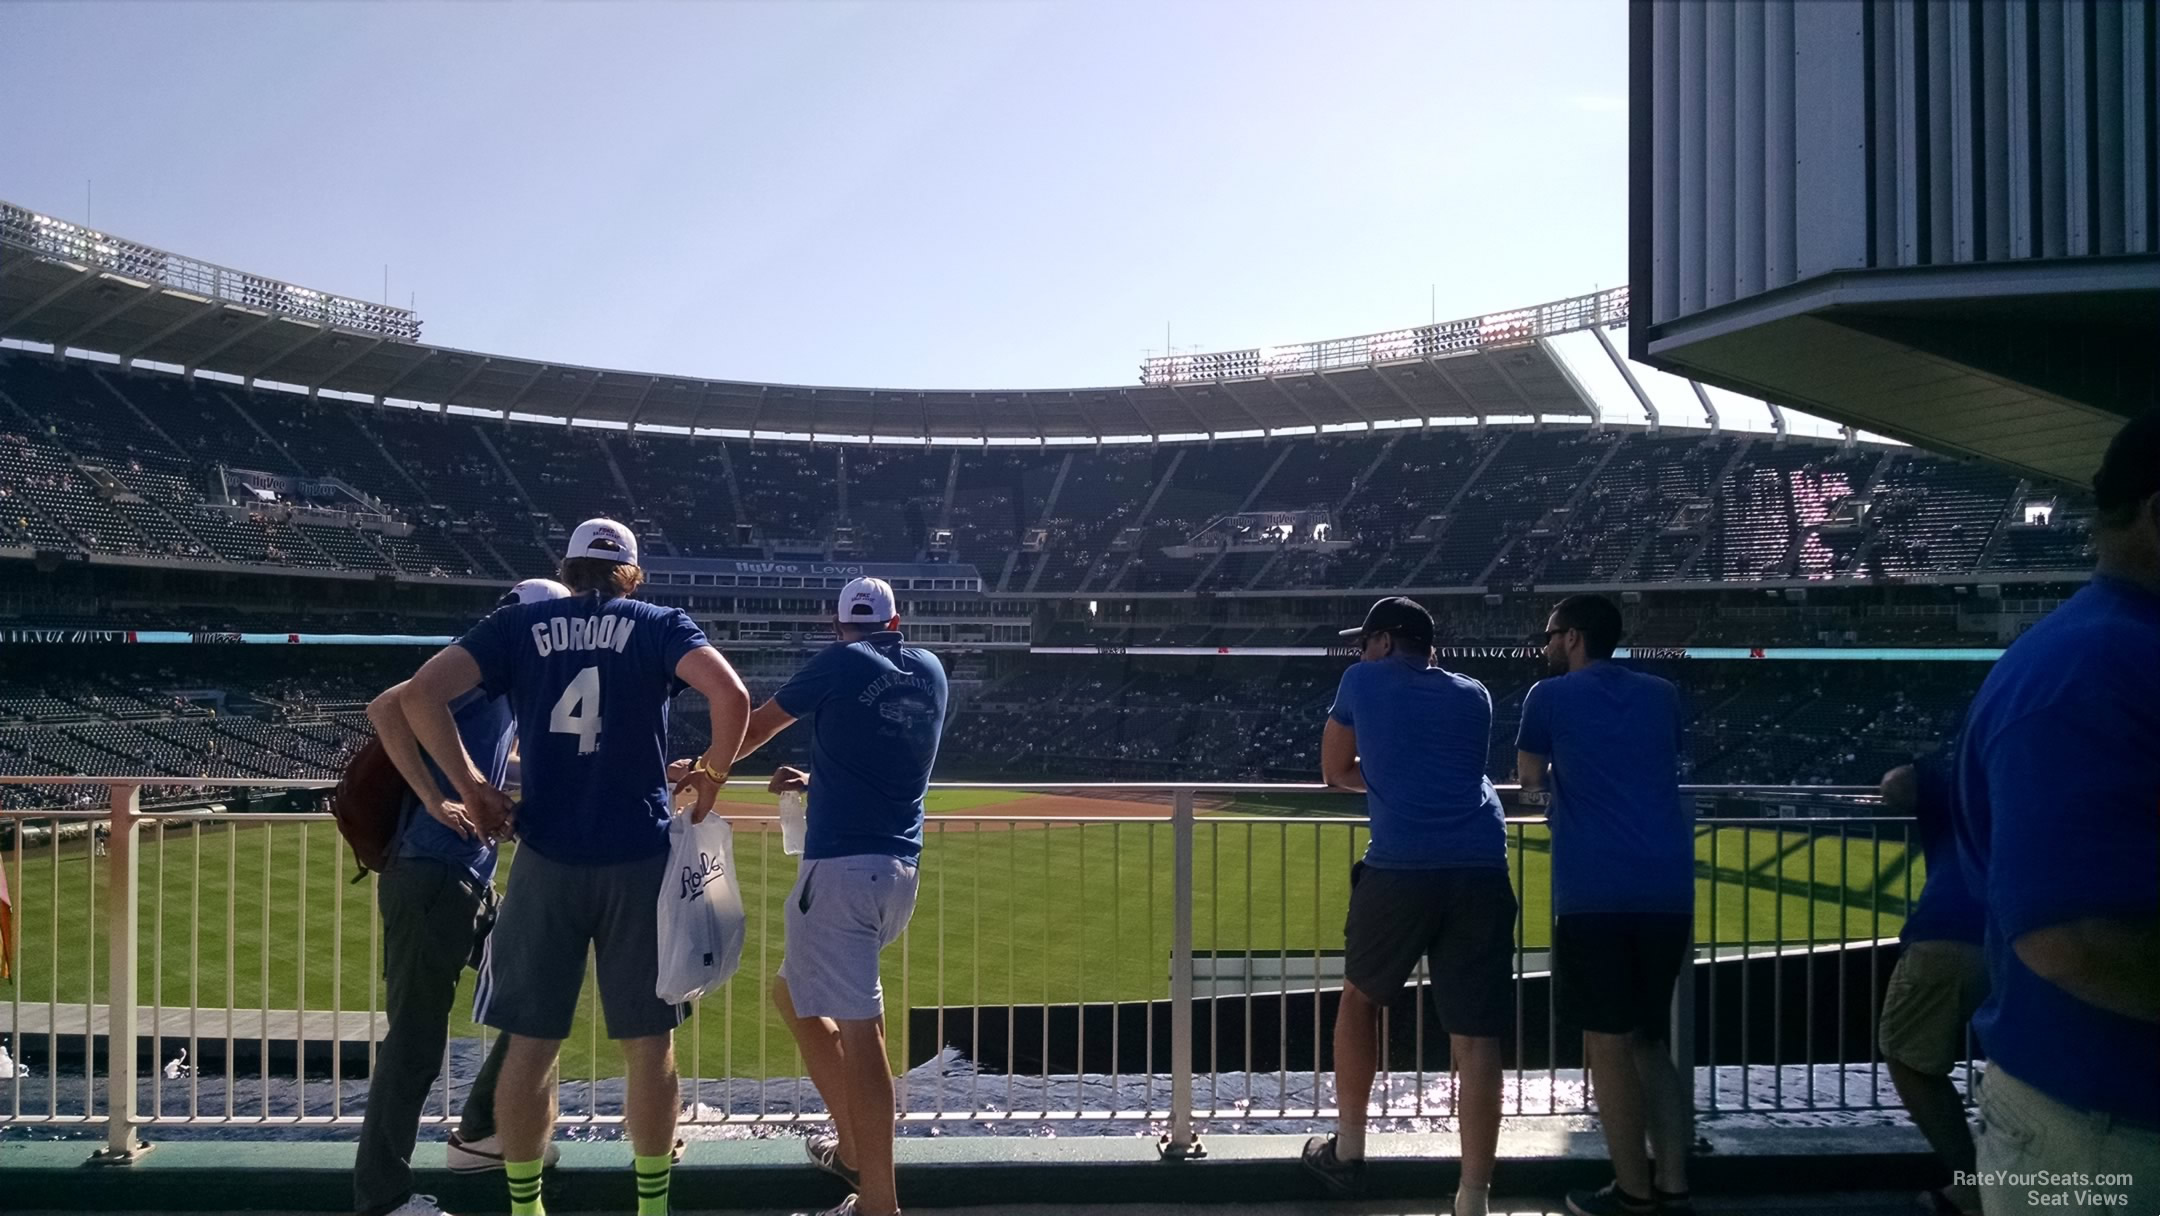 Seat View For Kauffman Stadium Standing Room Only